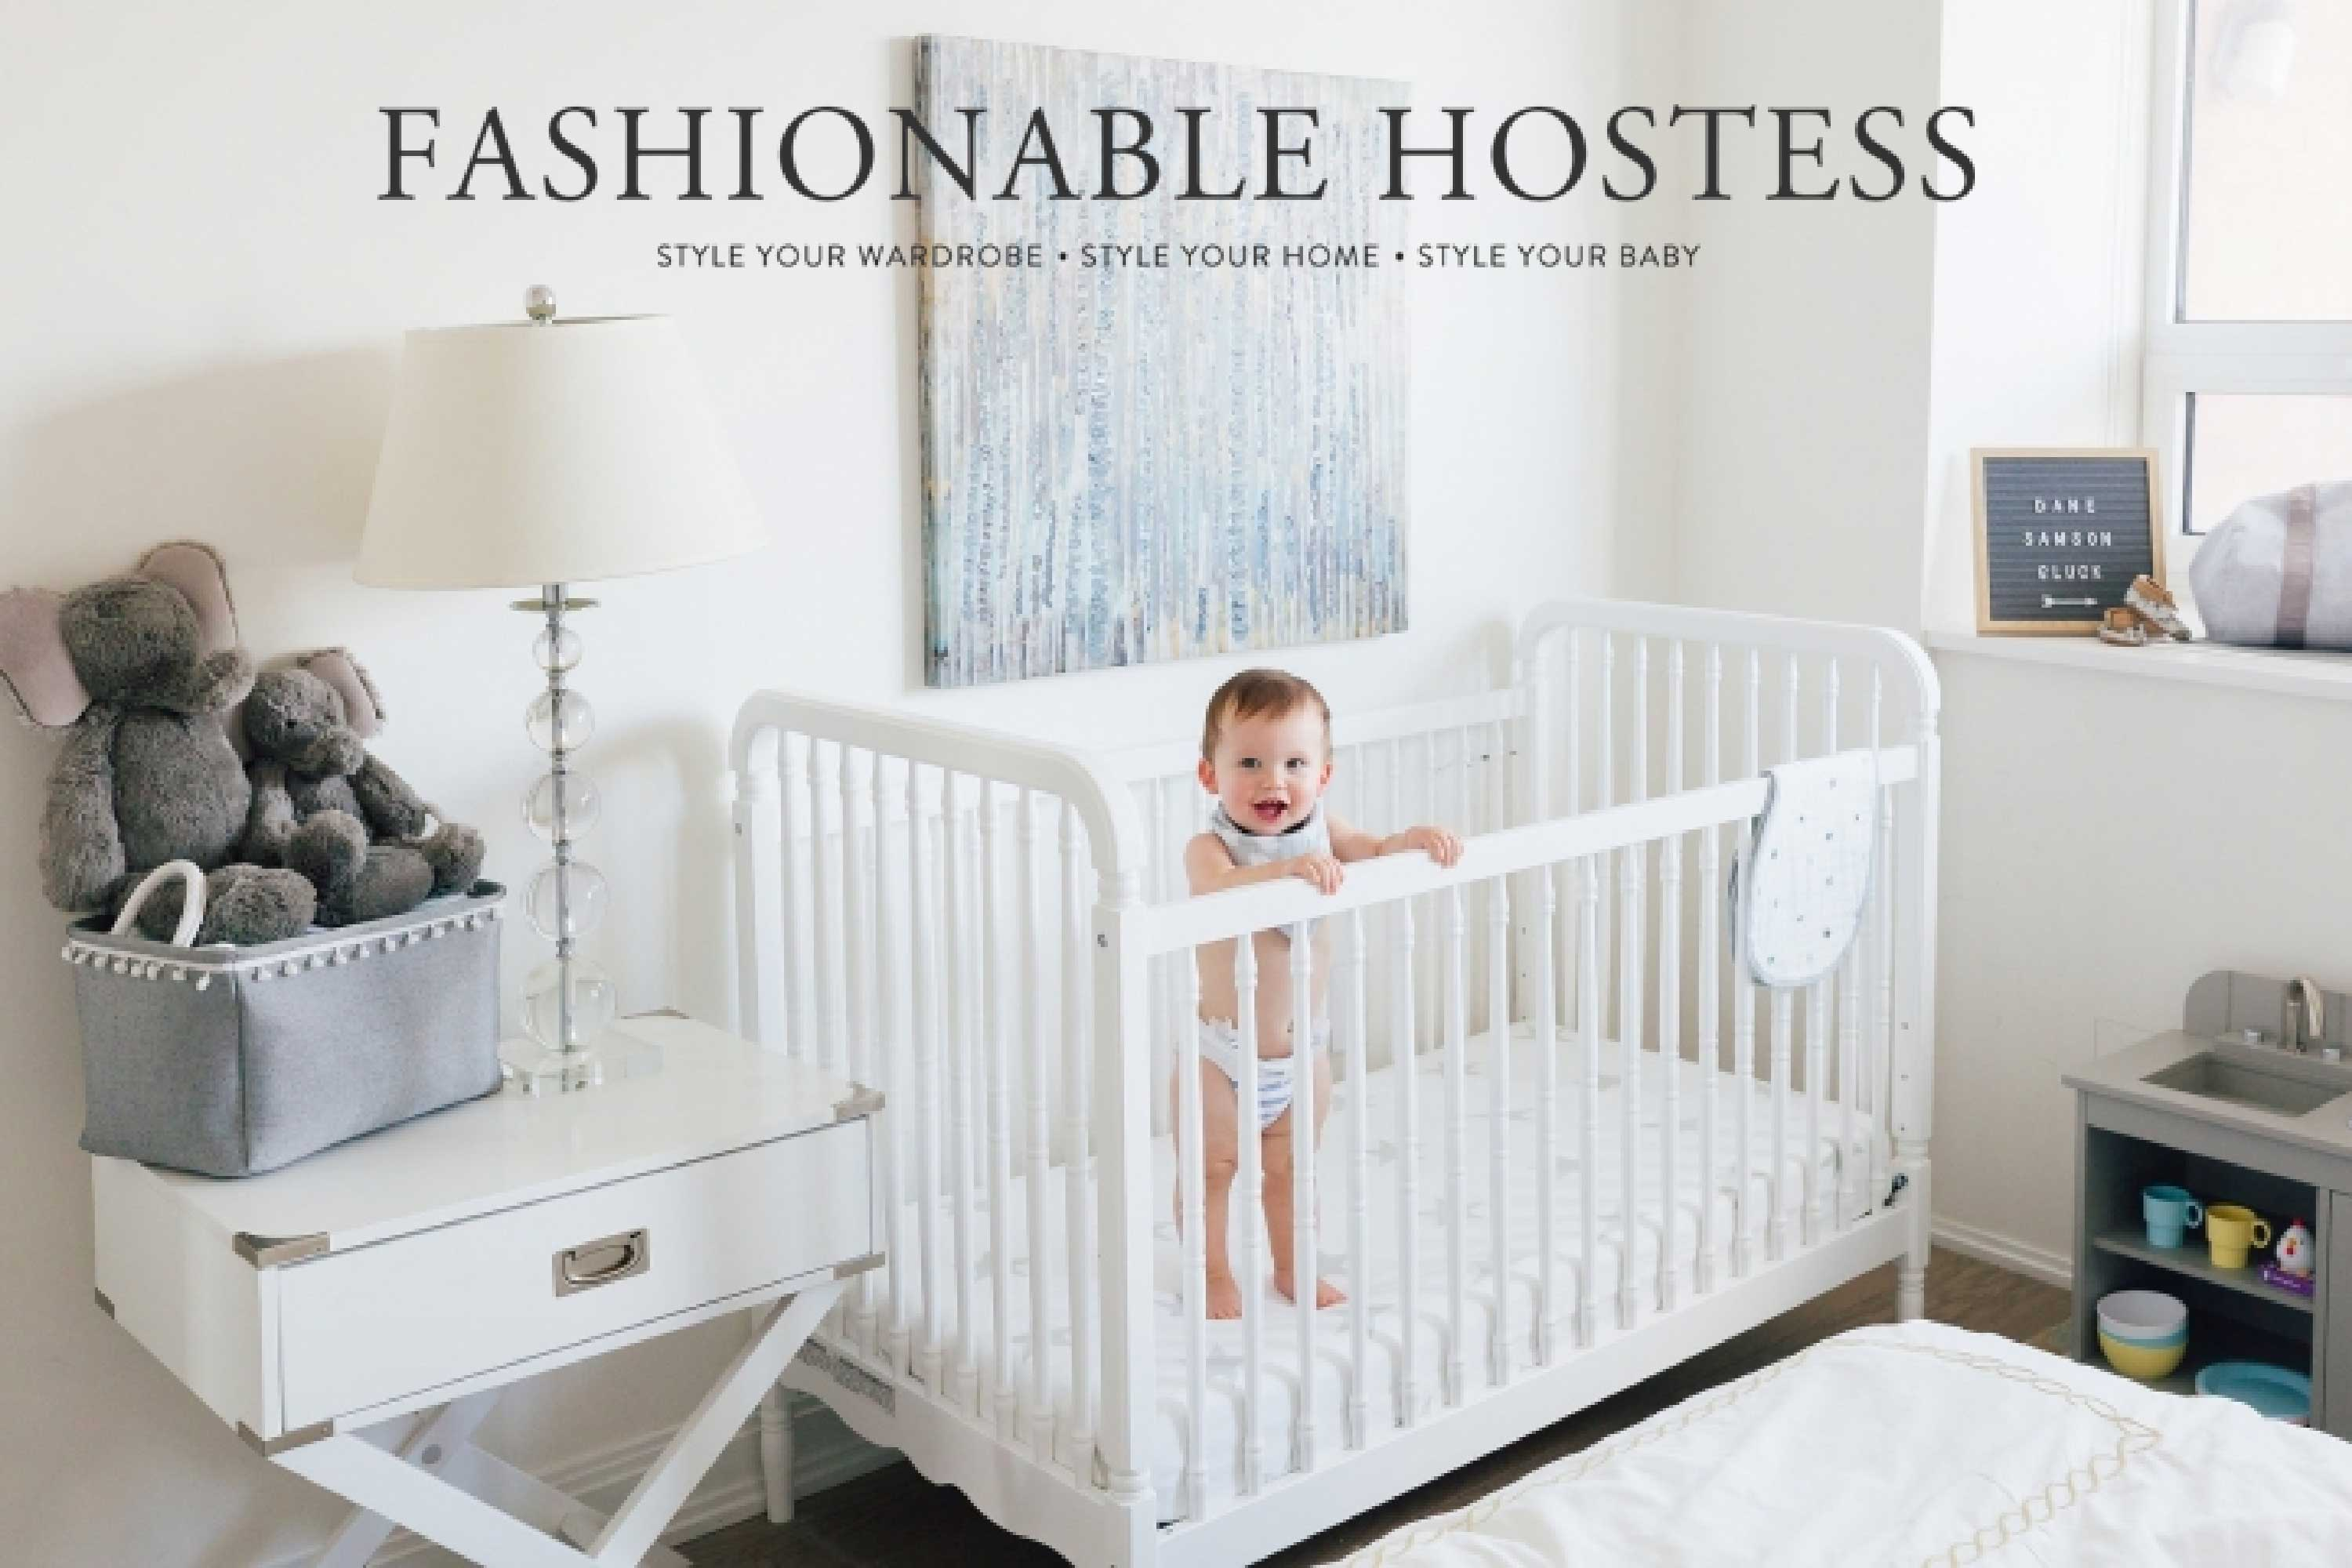 fashionable hostess, liberty 3-in-1 crib